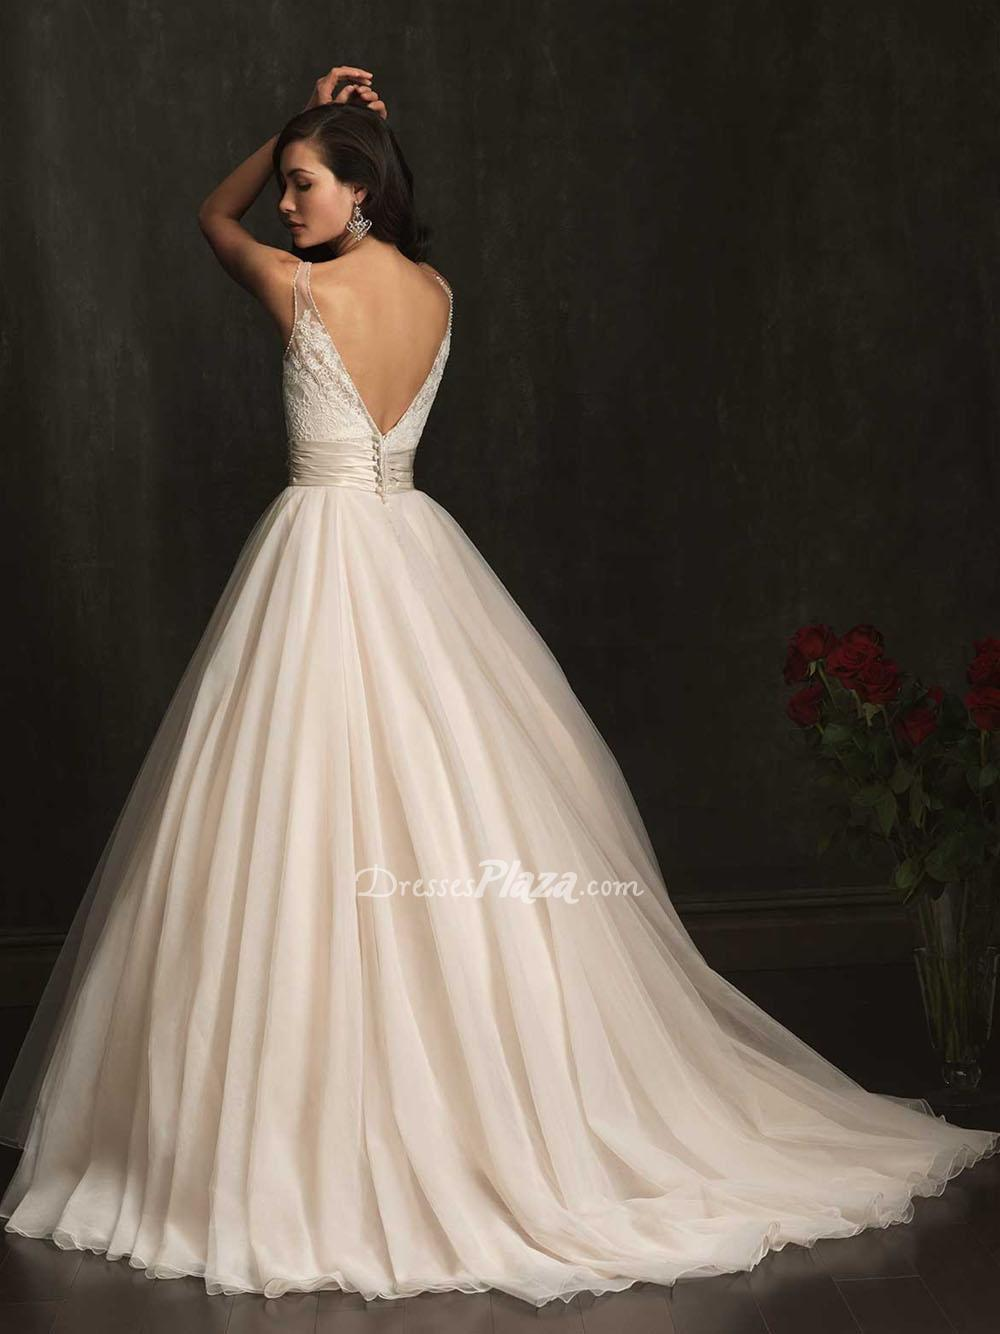 Hot V-neck Wedding Dresses – Topbridal